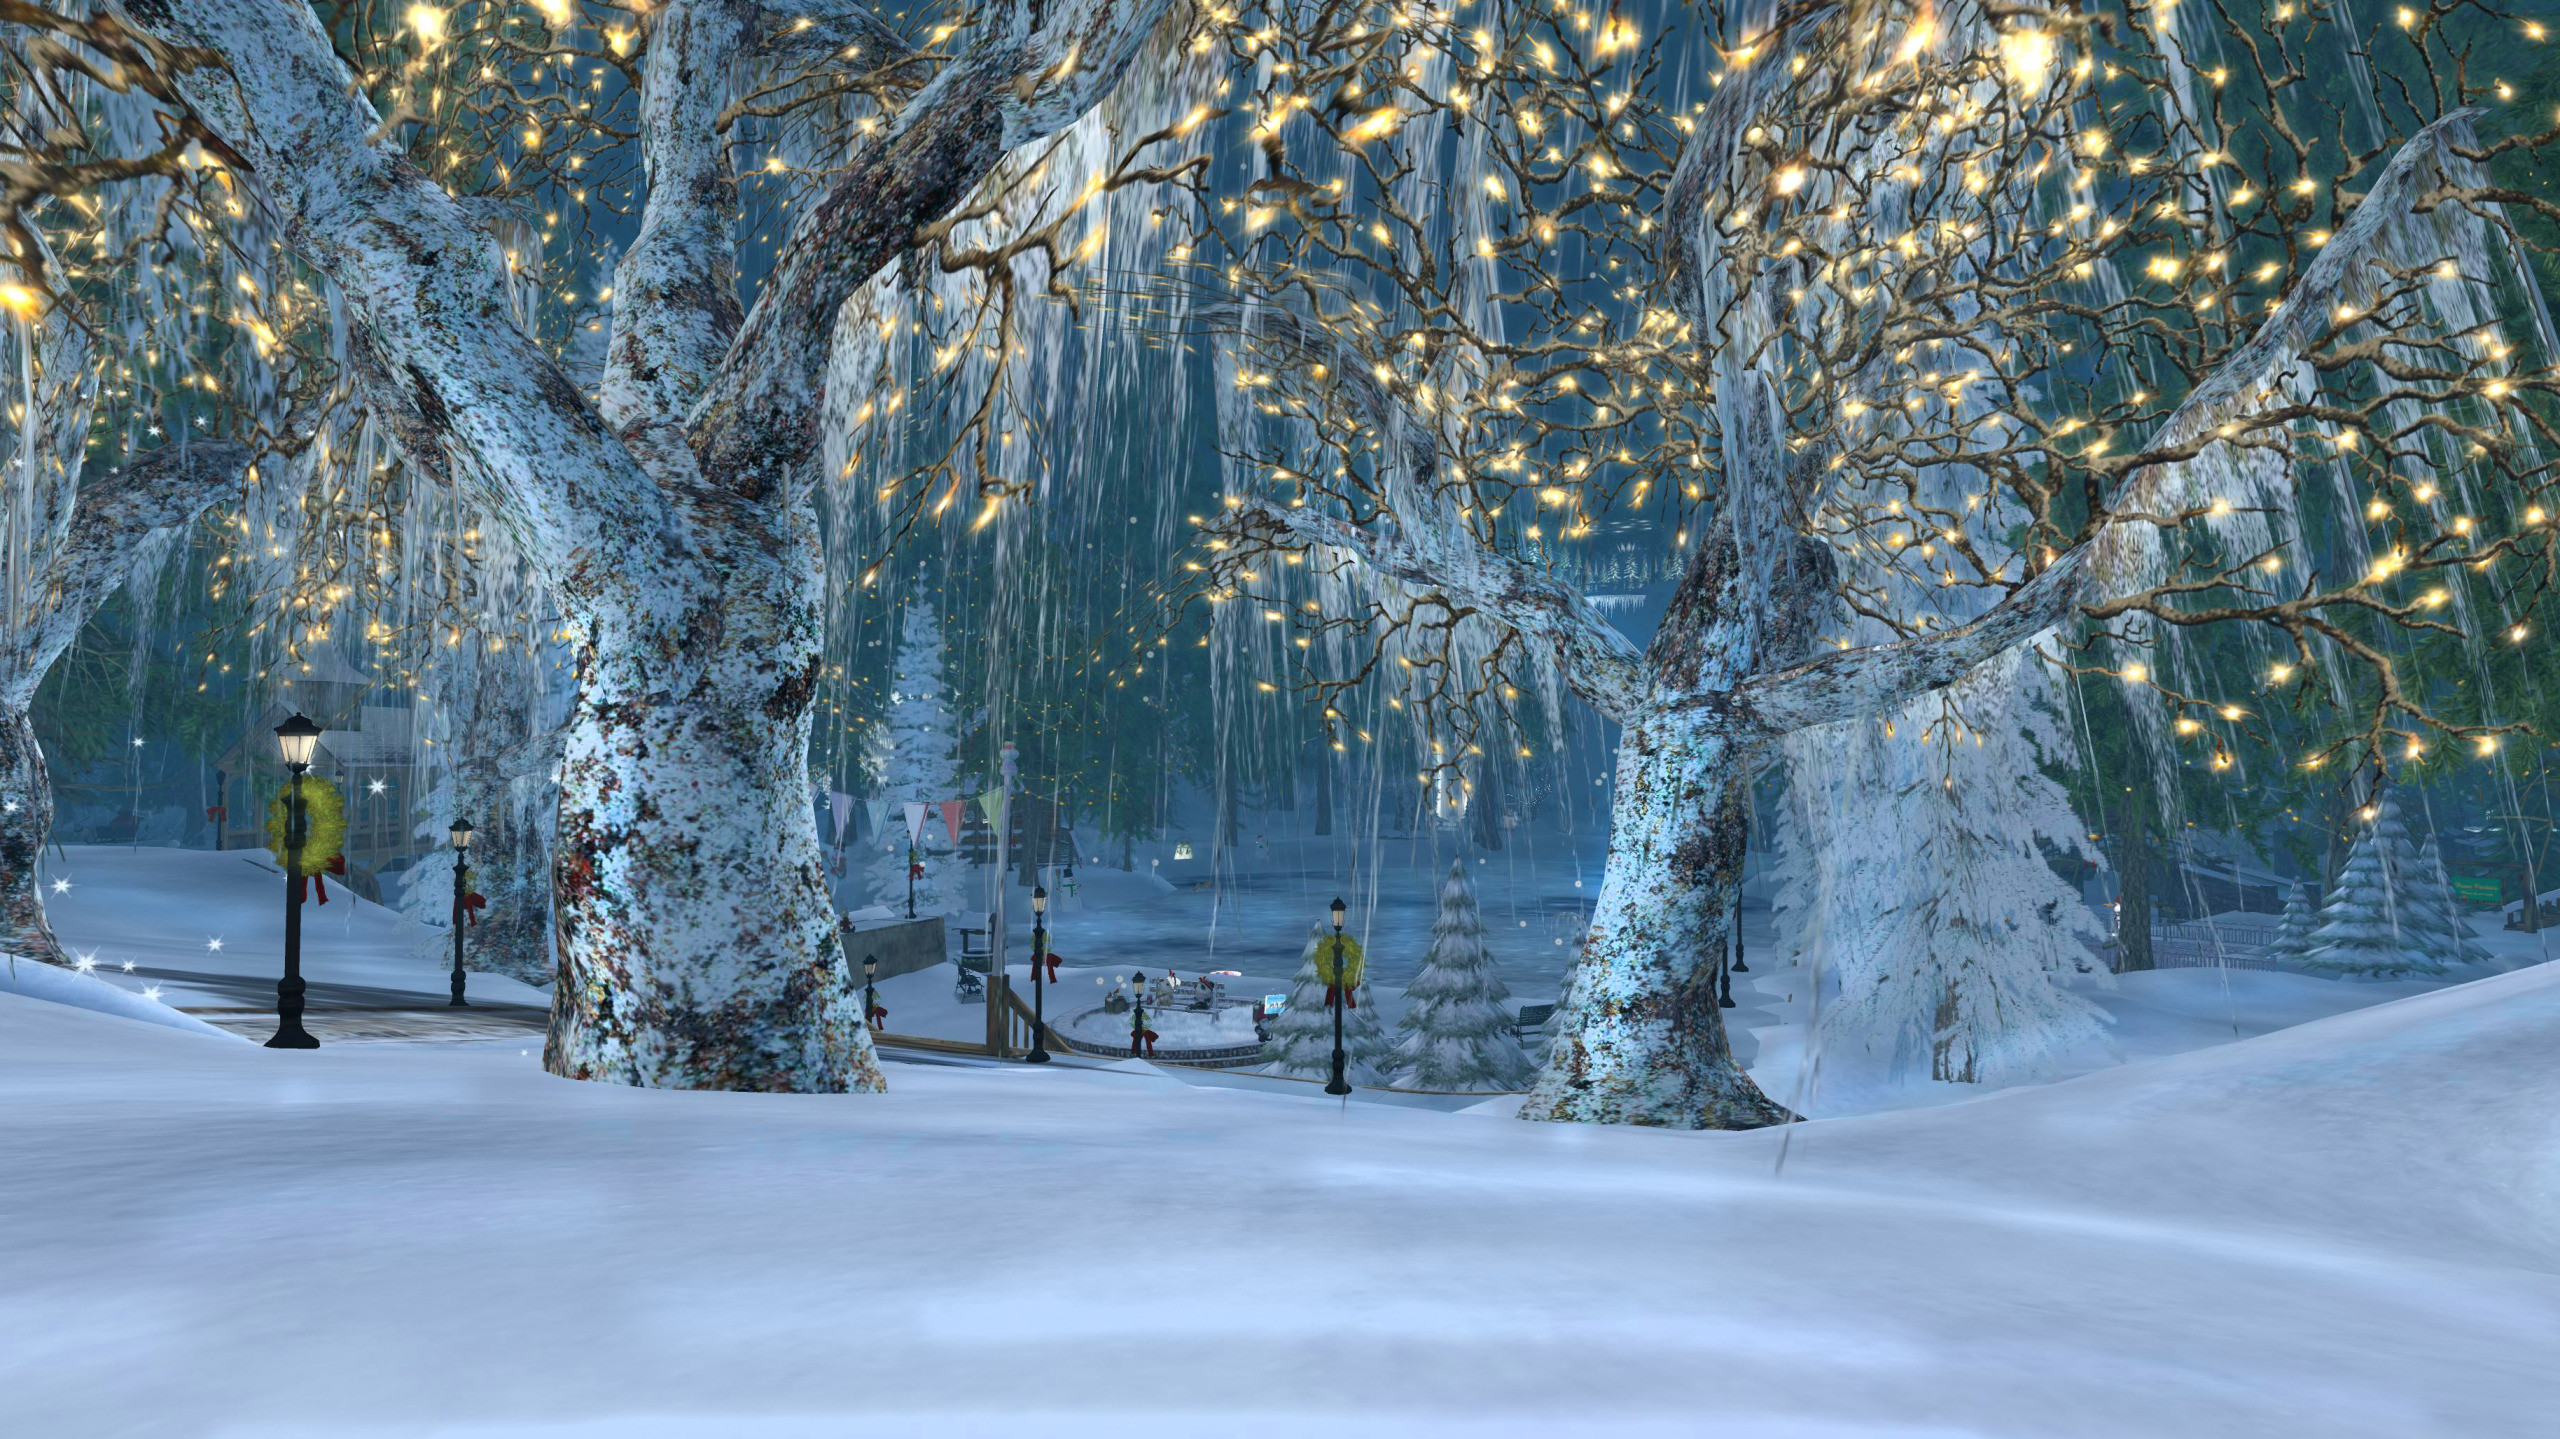 Winter Holiday Wallpapers (76 Wallpapers)